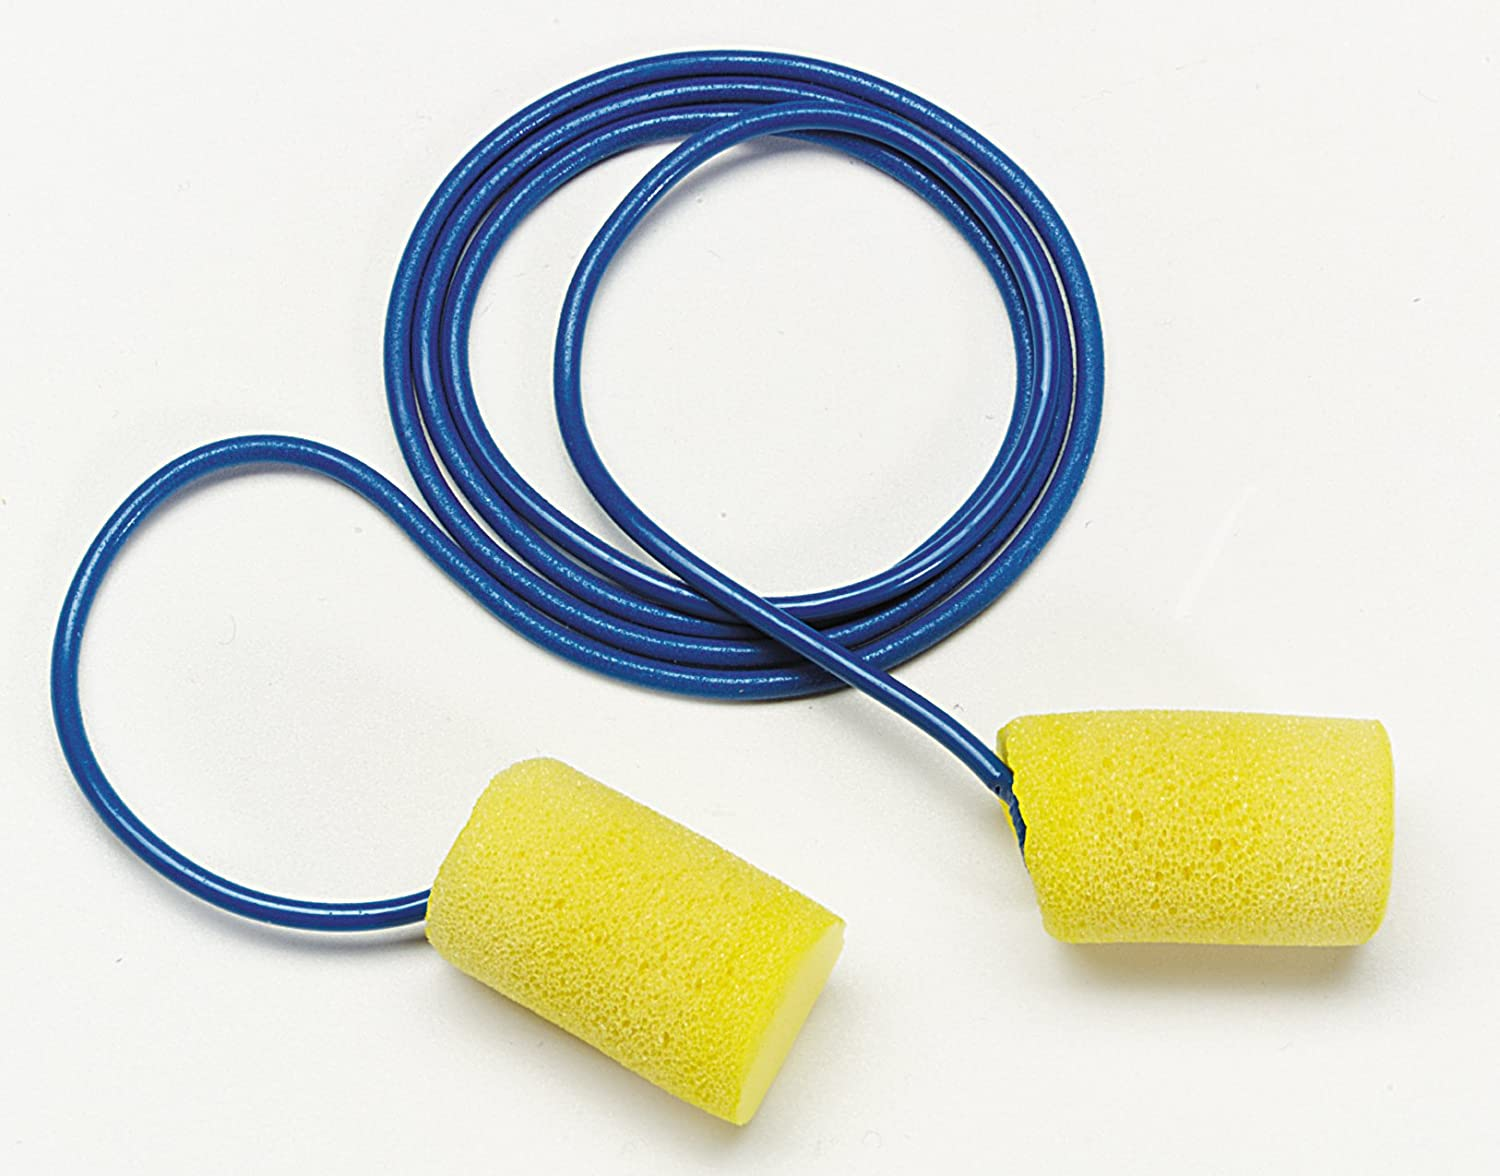 3M E-A-R Classic Metal Detectable Earplugs, Hearing Conservation 311-4101 in Poly Bag by 3M   B008MCTMT8